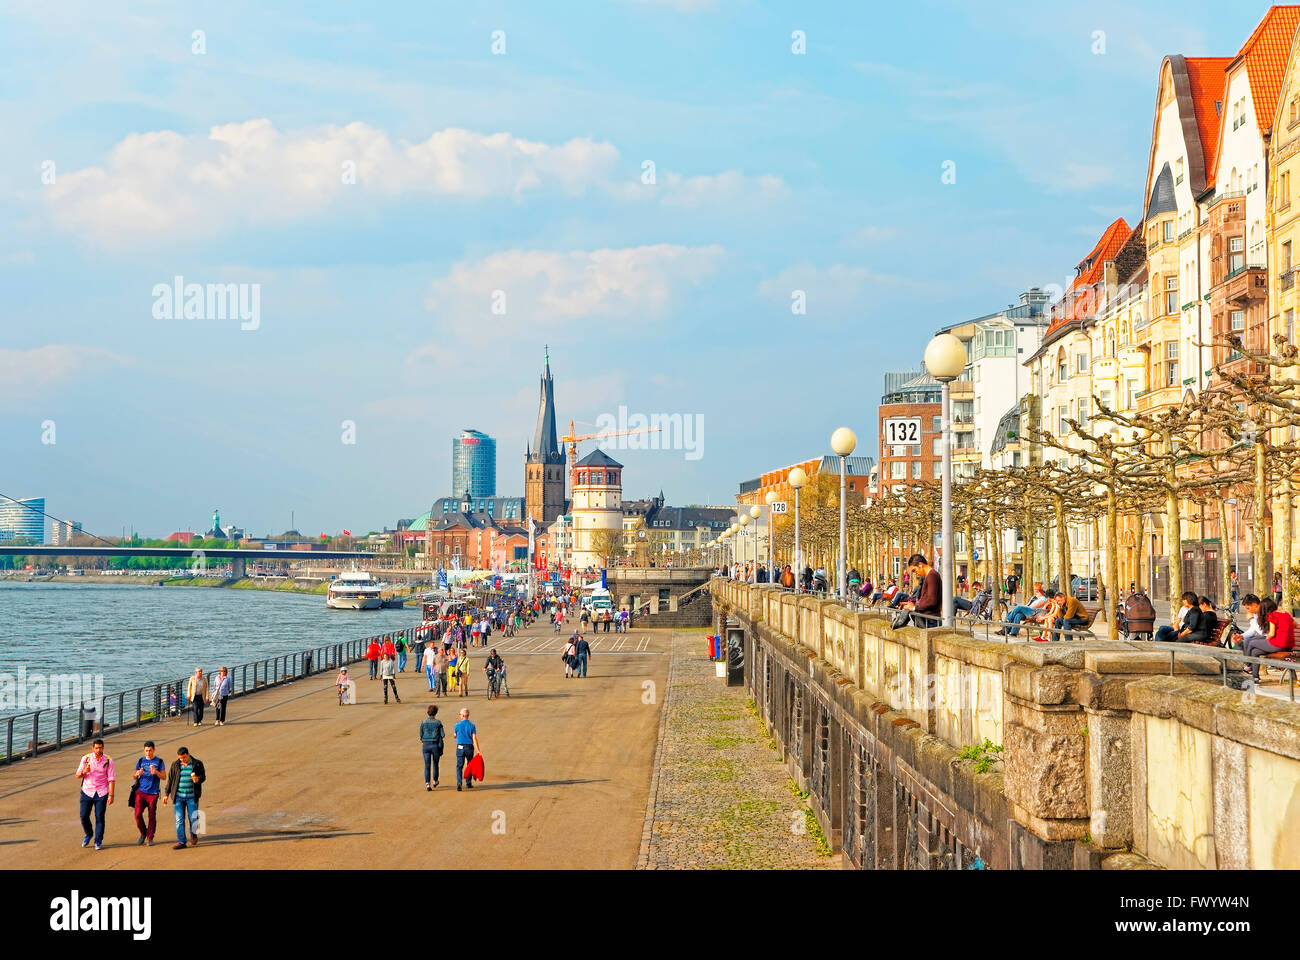 DUSSELDORF, GERMANY - MAY 3, 2013: Dusseldorf Rhine Embankmentr with tourists and St Lambertus Collegiate Church and Schiffahrtmuseum in the background. Stock Photo